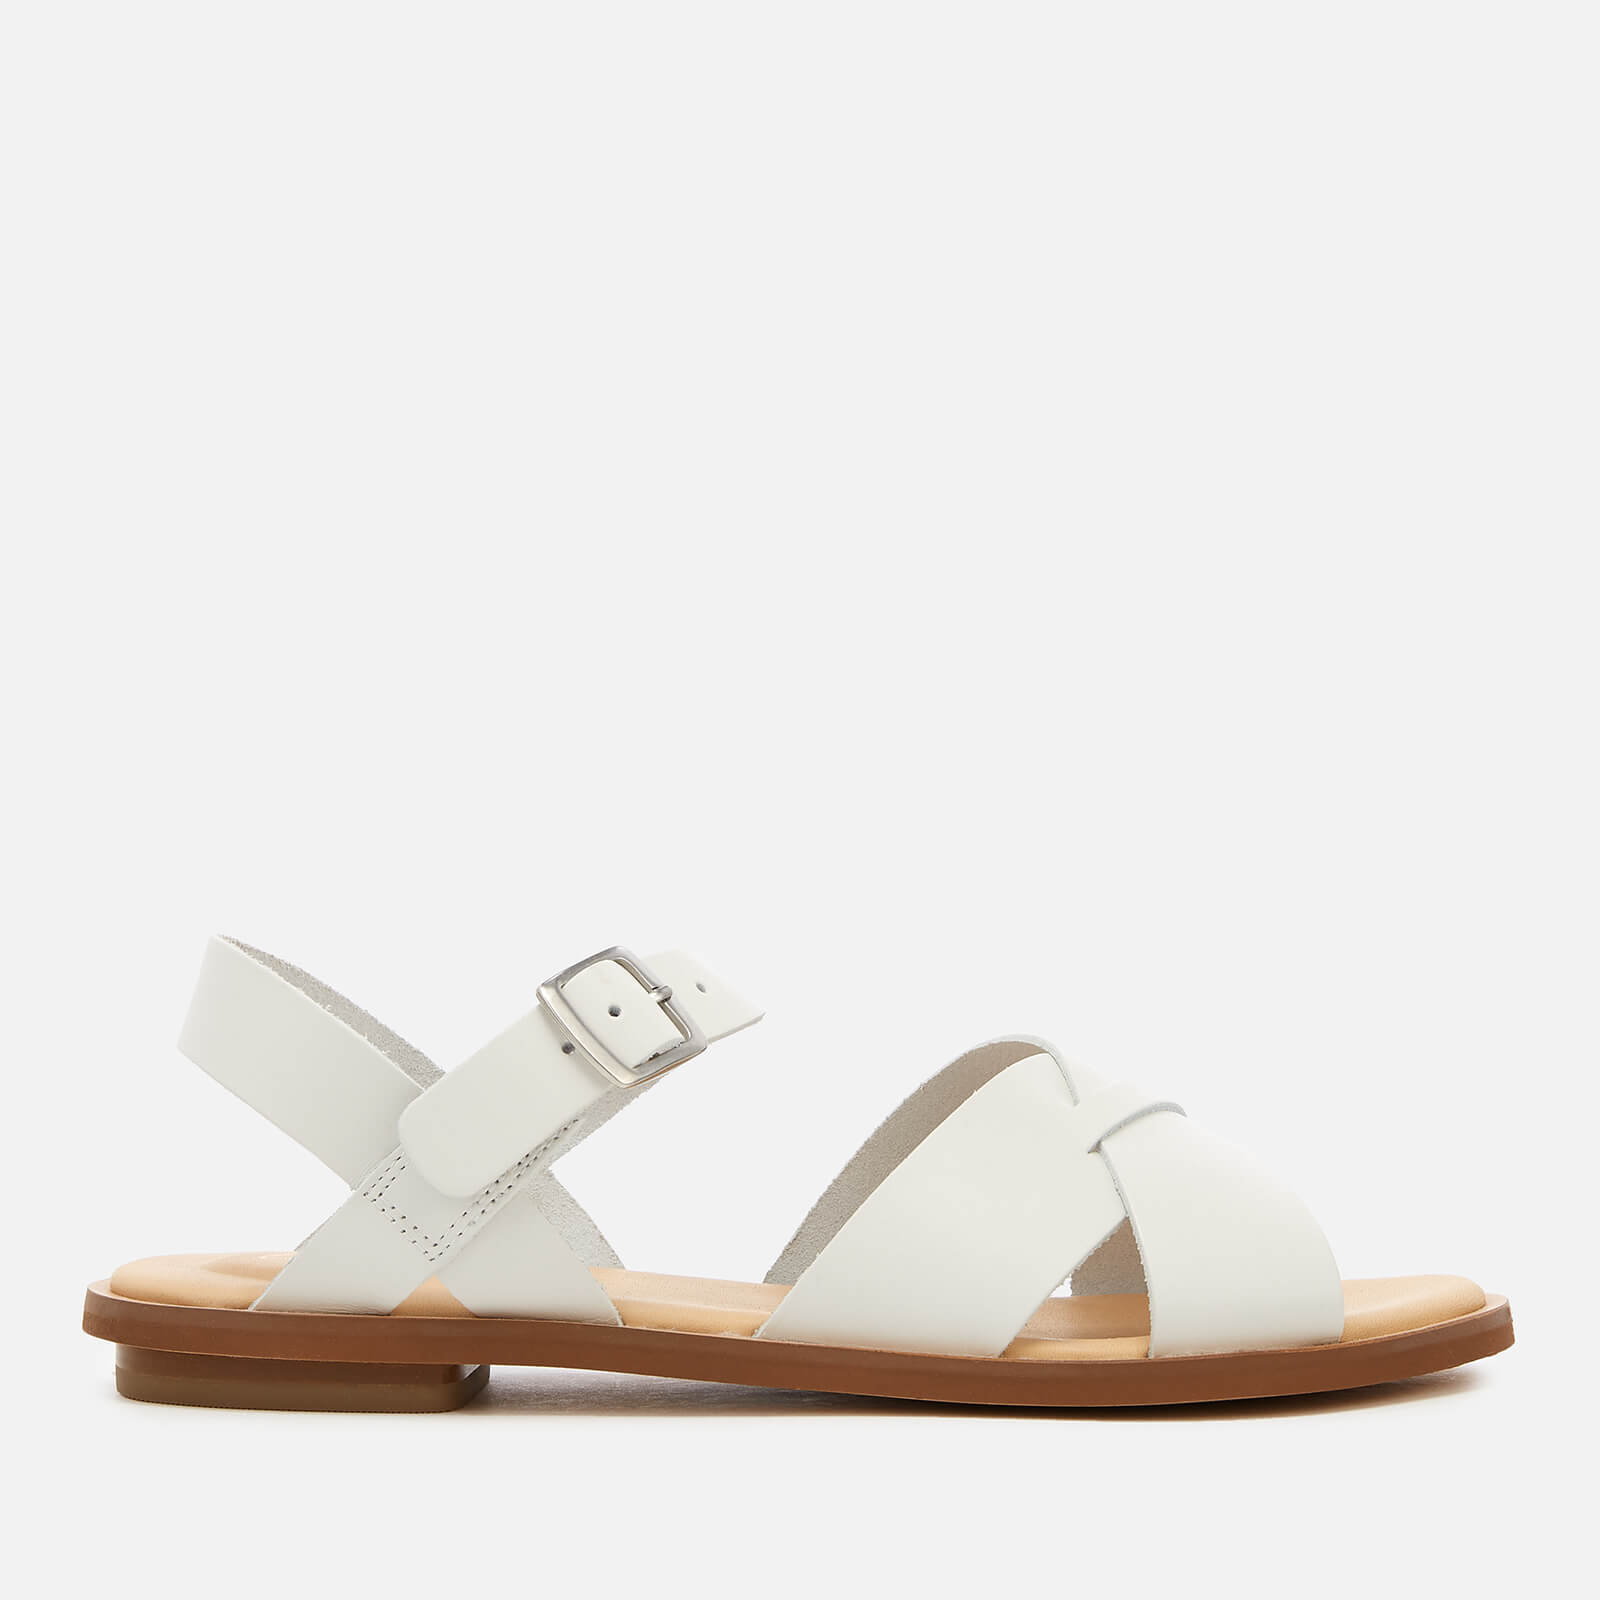 Clarks Women's Willow Gild Leather Sandals - White